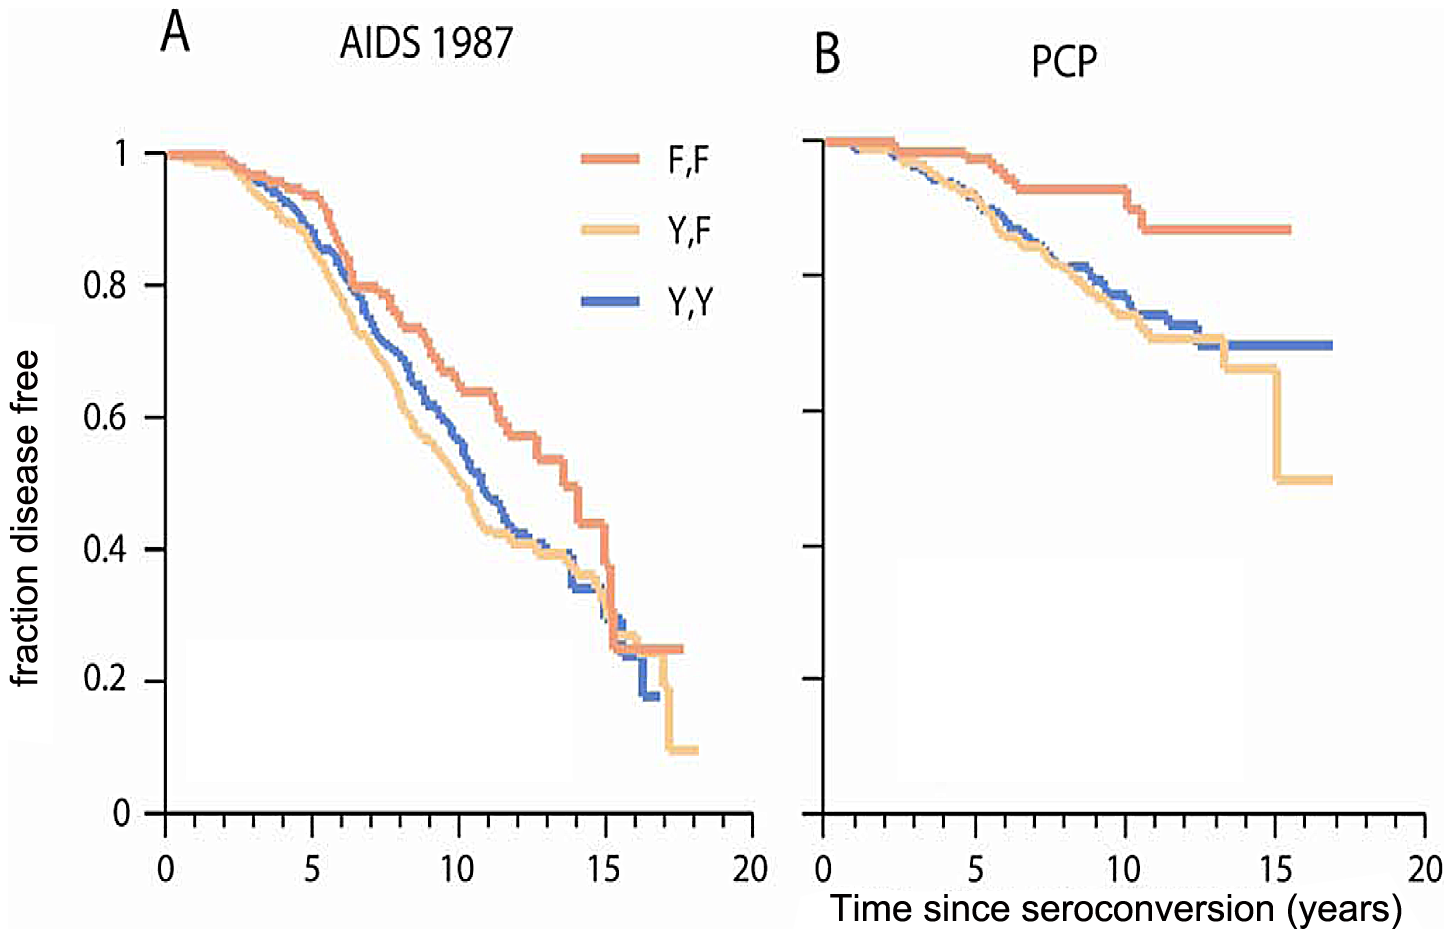 Genetic effect of <i>CCRL2-</i>167F on AIDS progression and PCP.